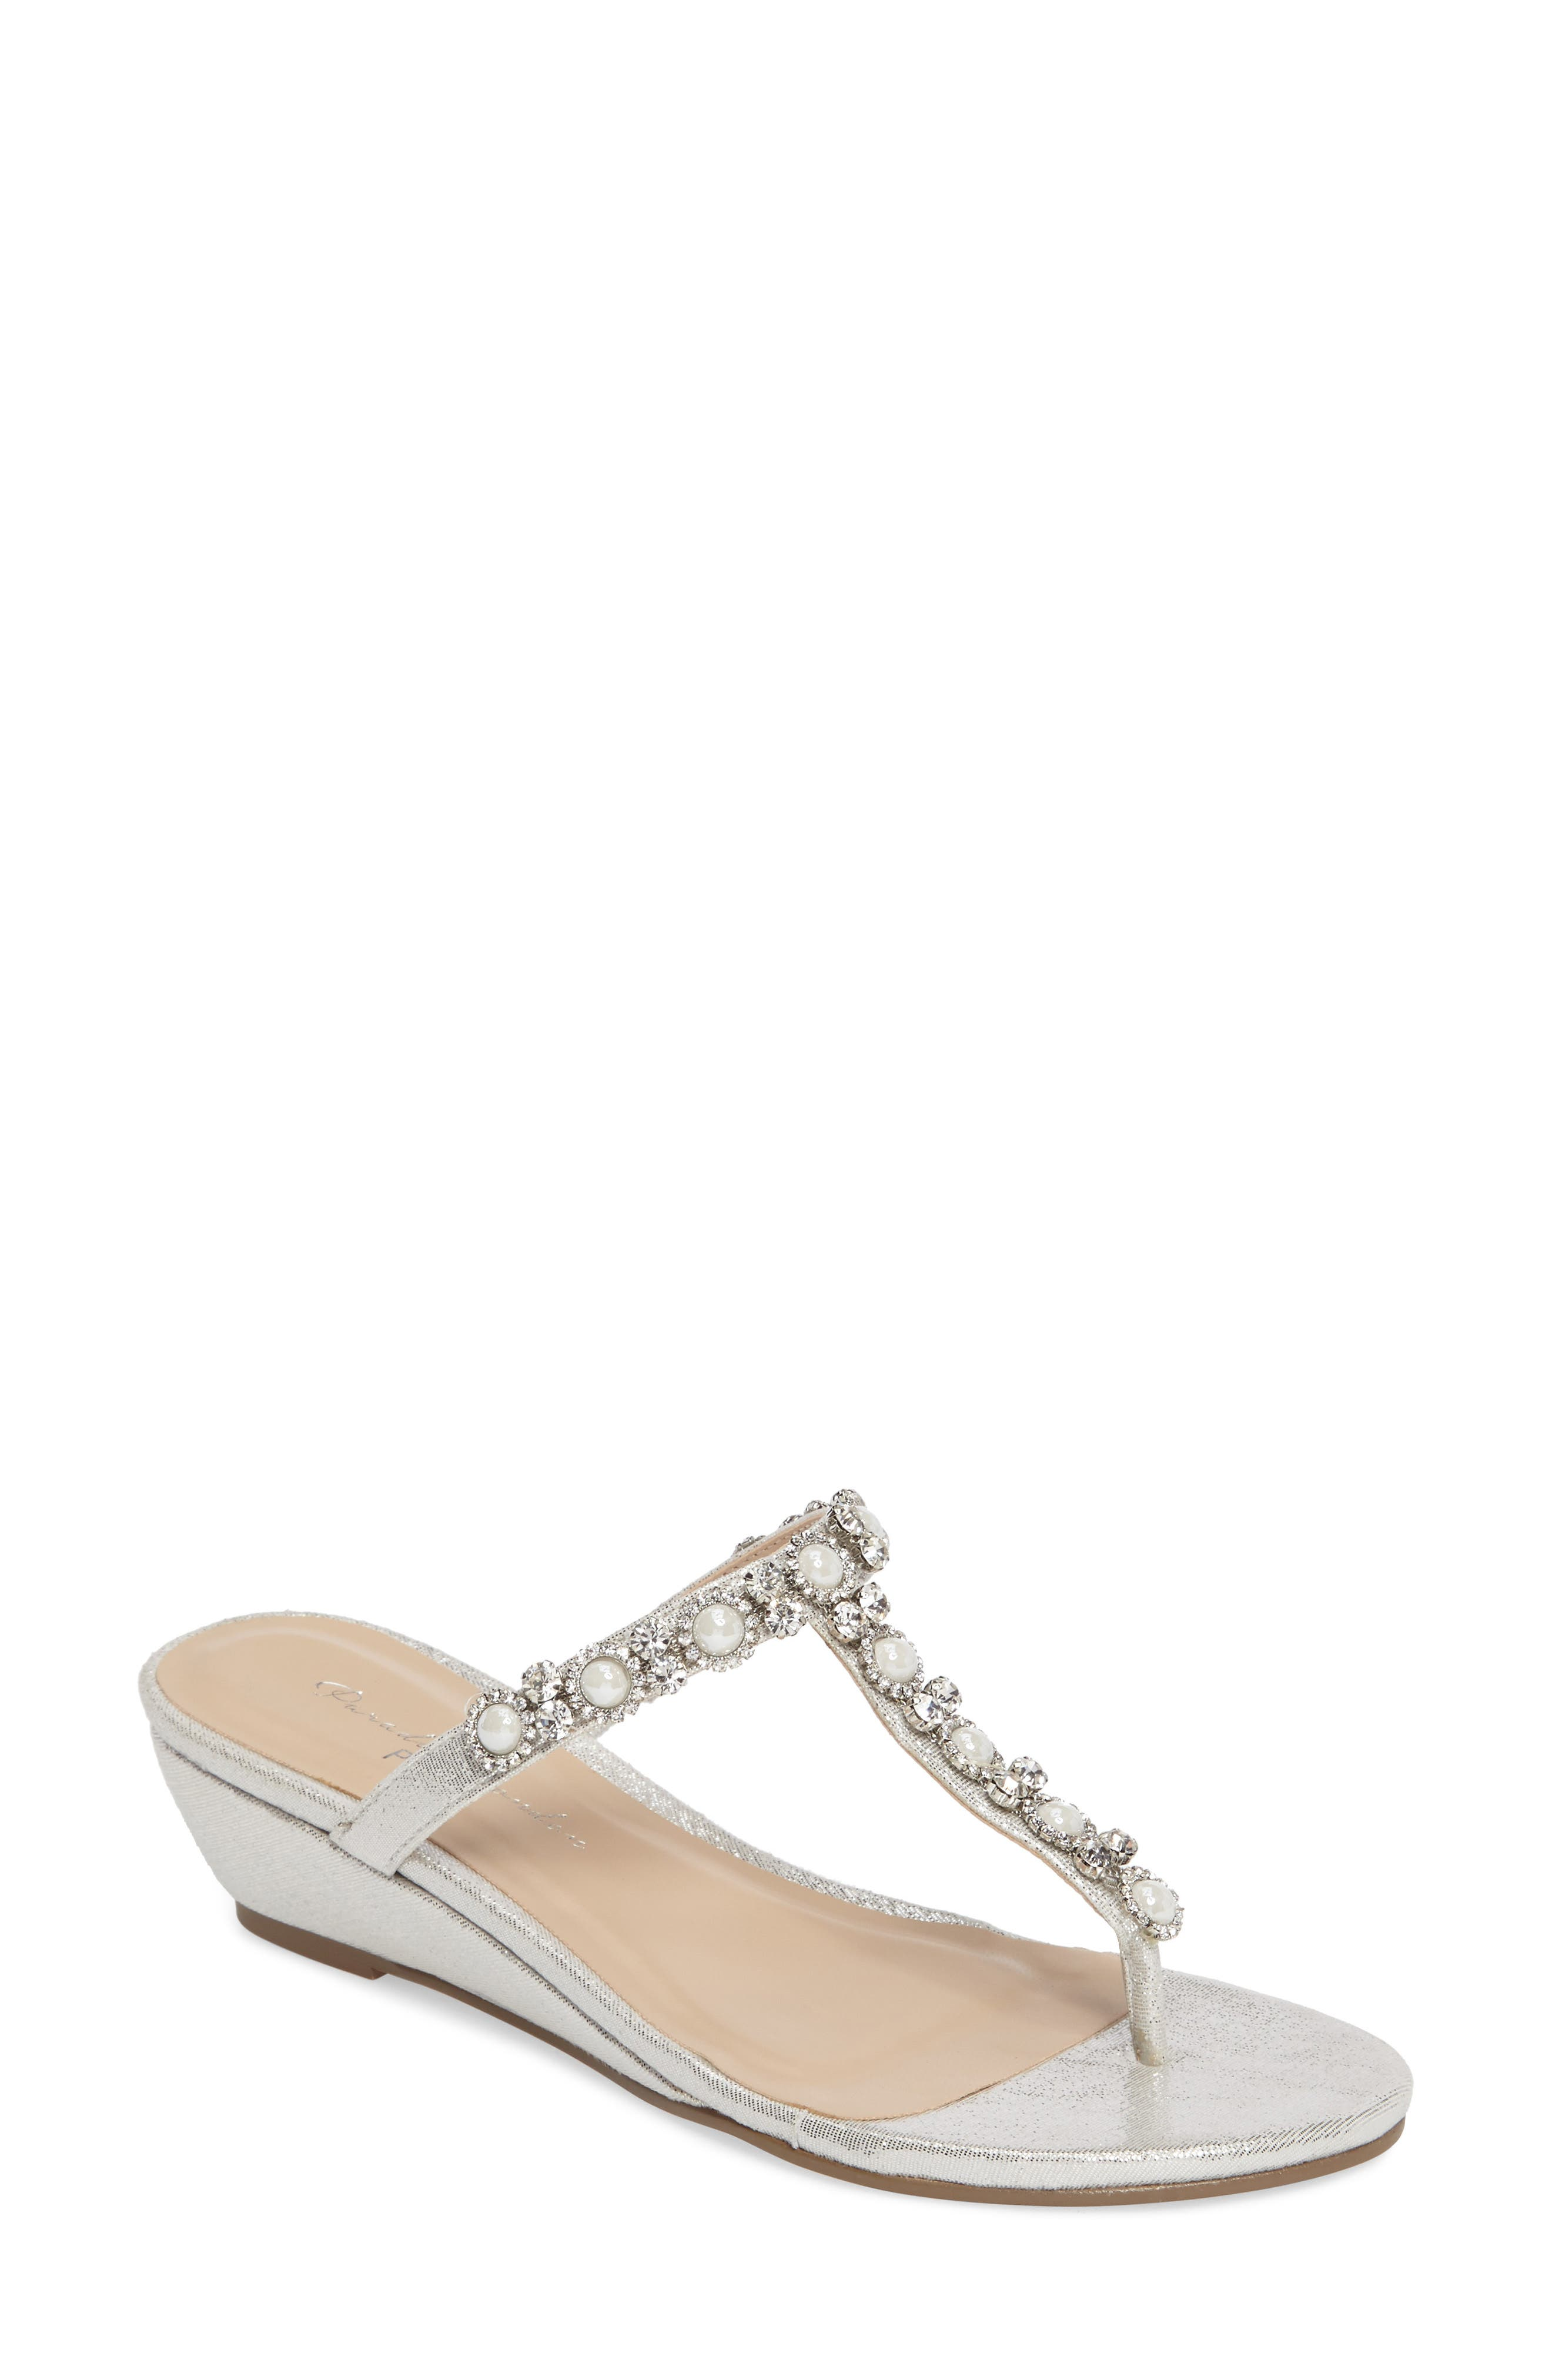 Alternate Image 1 Selected - pink paradox london Marnie Embellished T-Strap Wedge (Women)